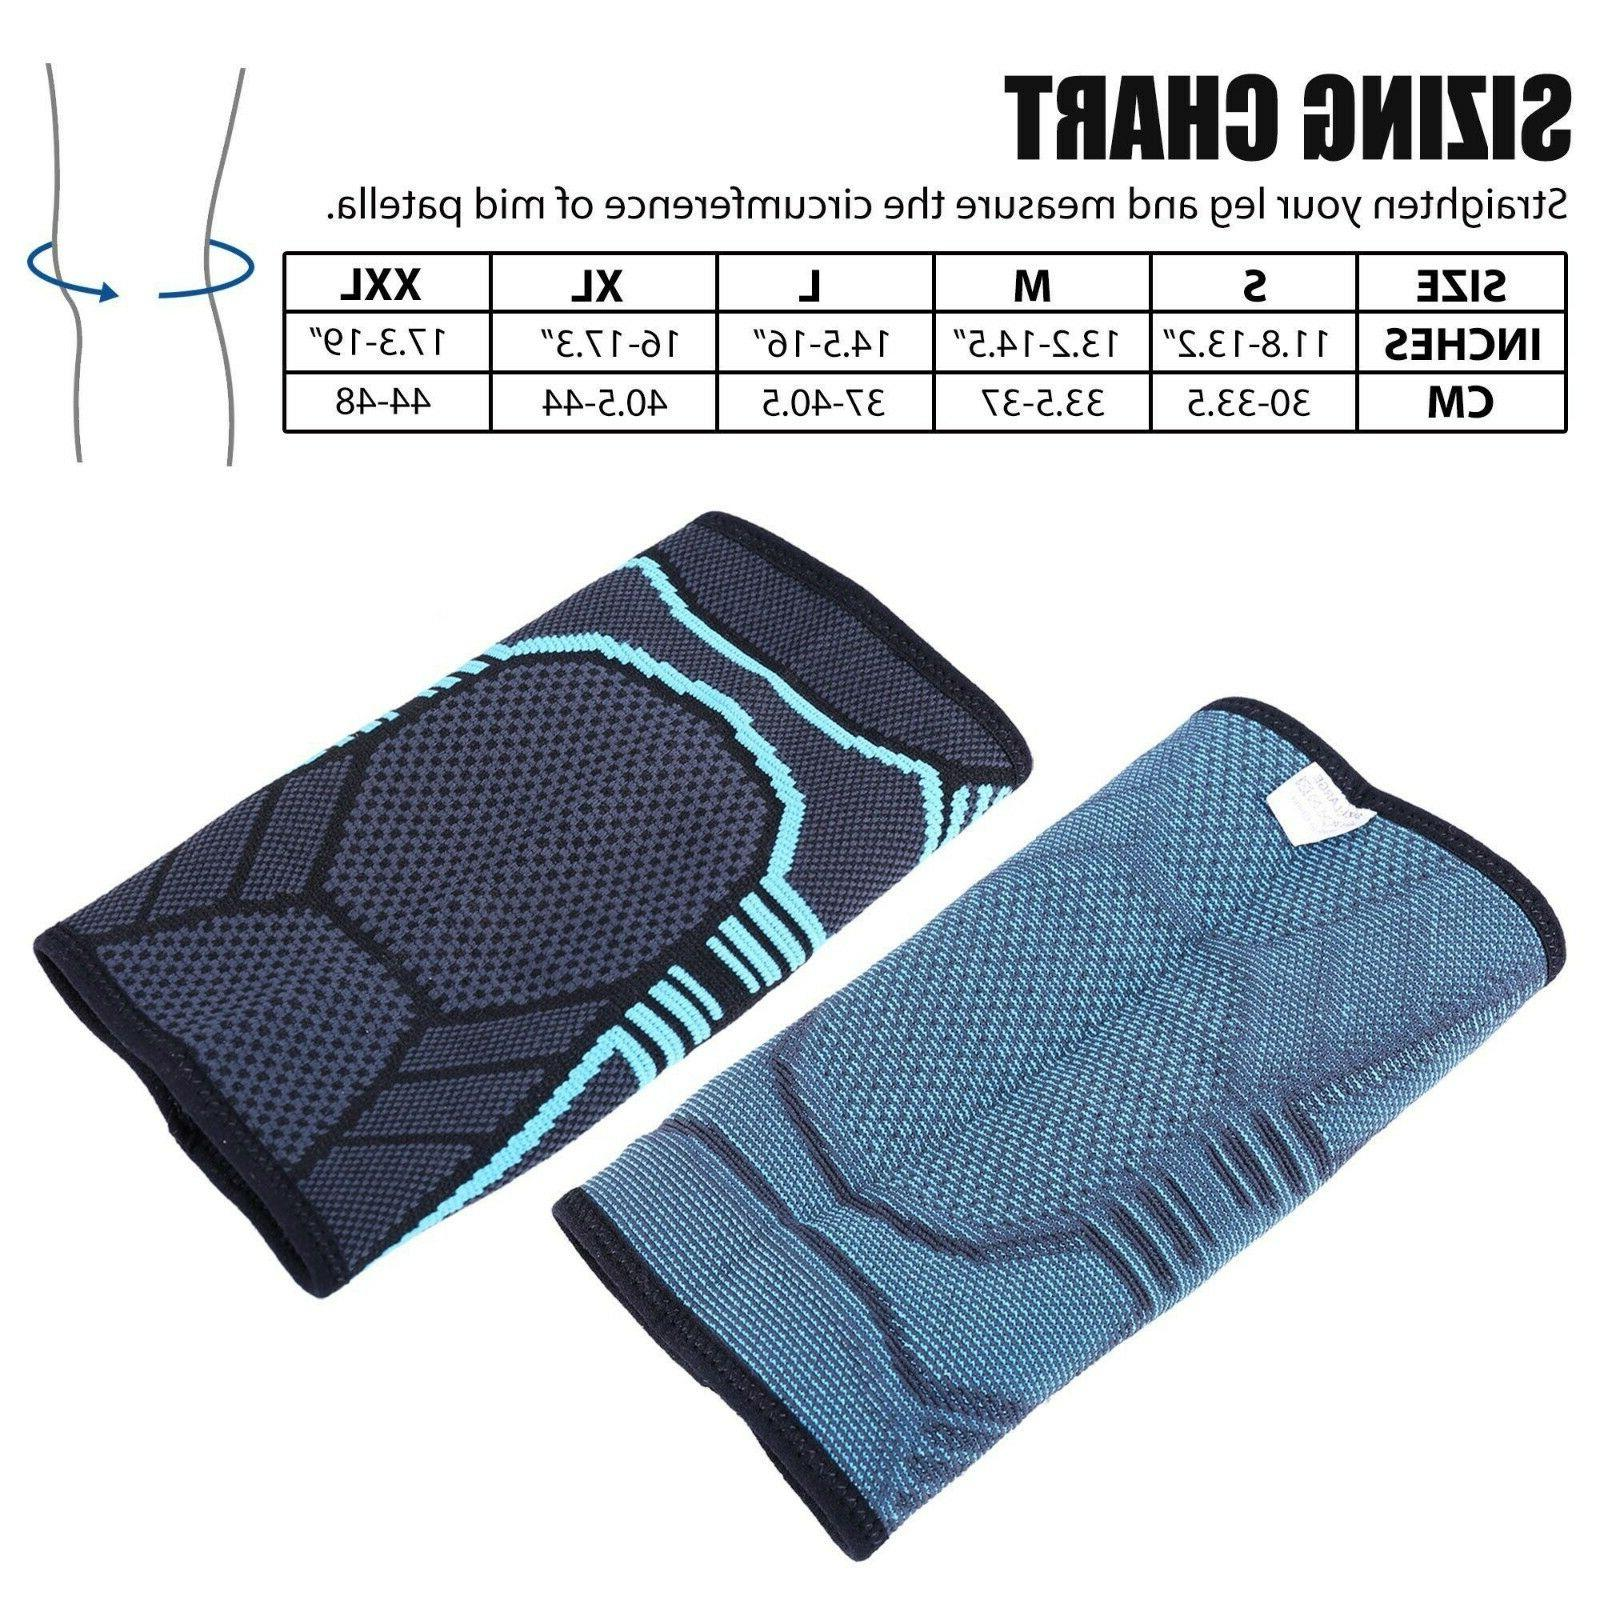 2x Brace Support Joint Relief